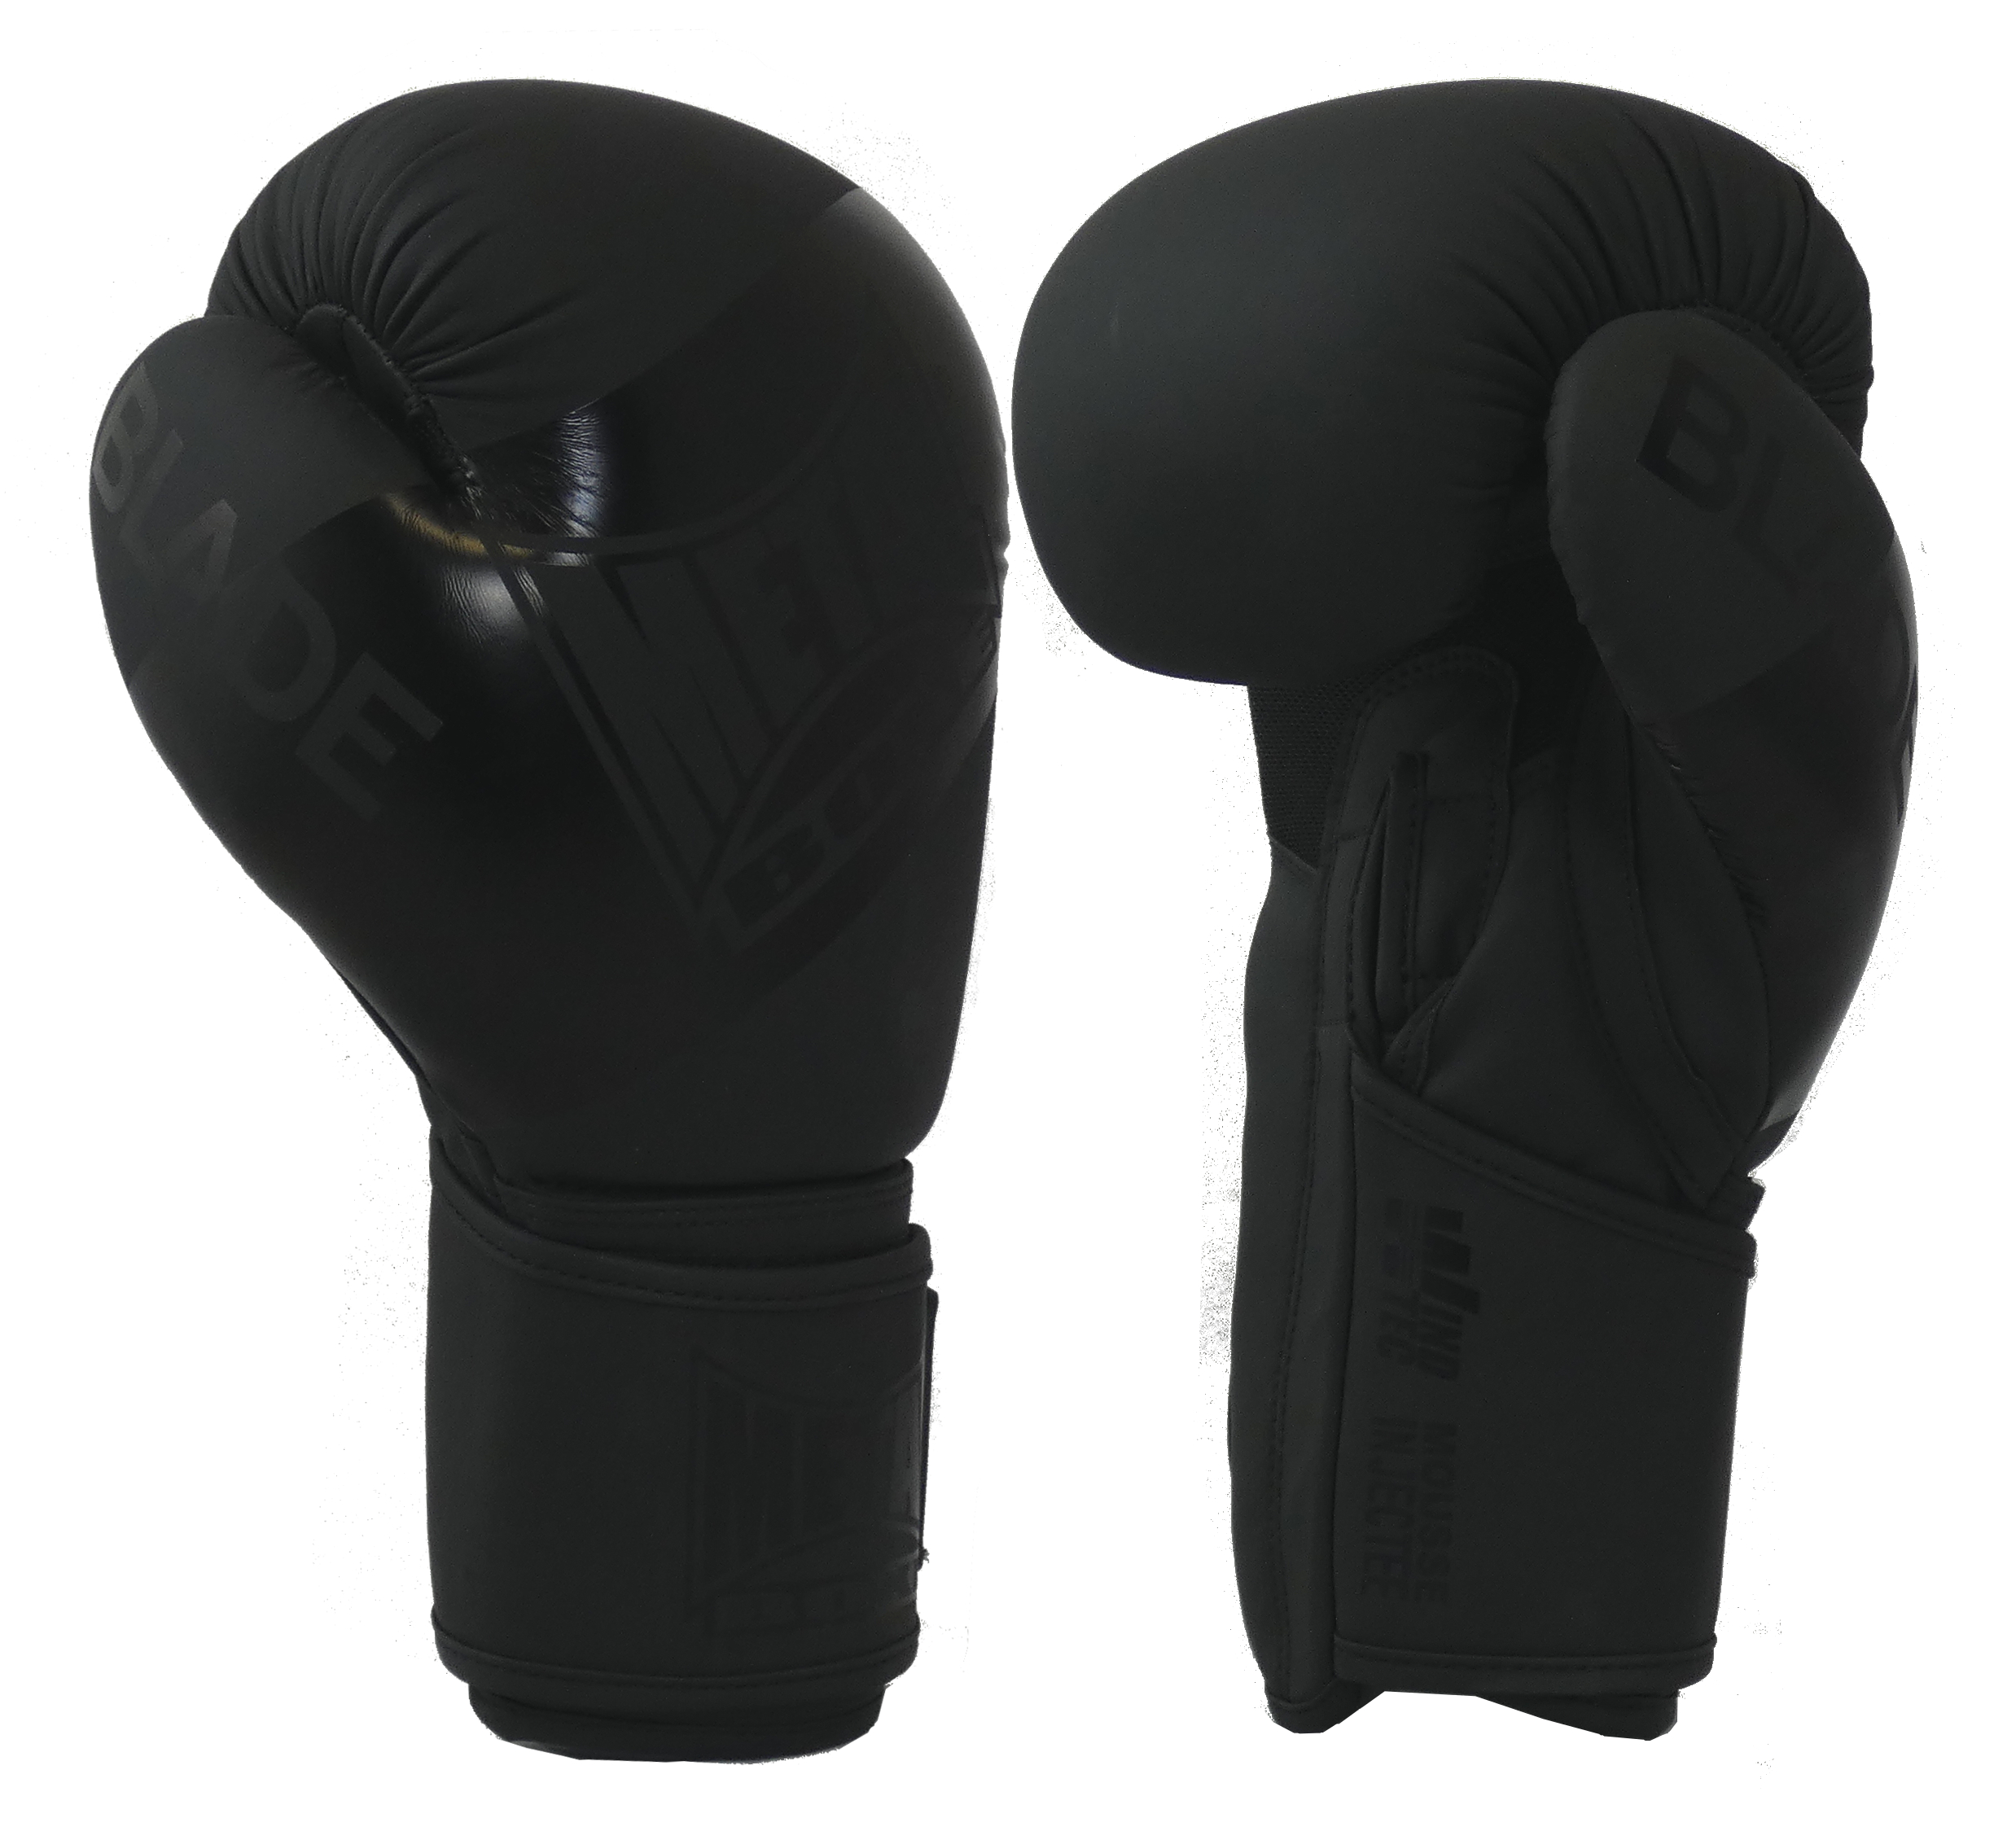 Gants de boxe Métal boxe Blade Black is Black